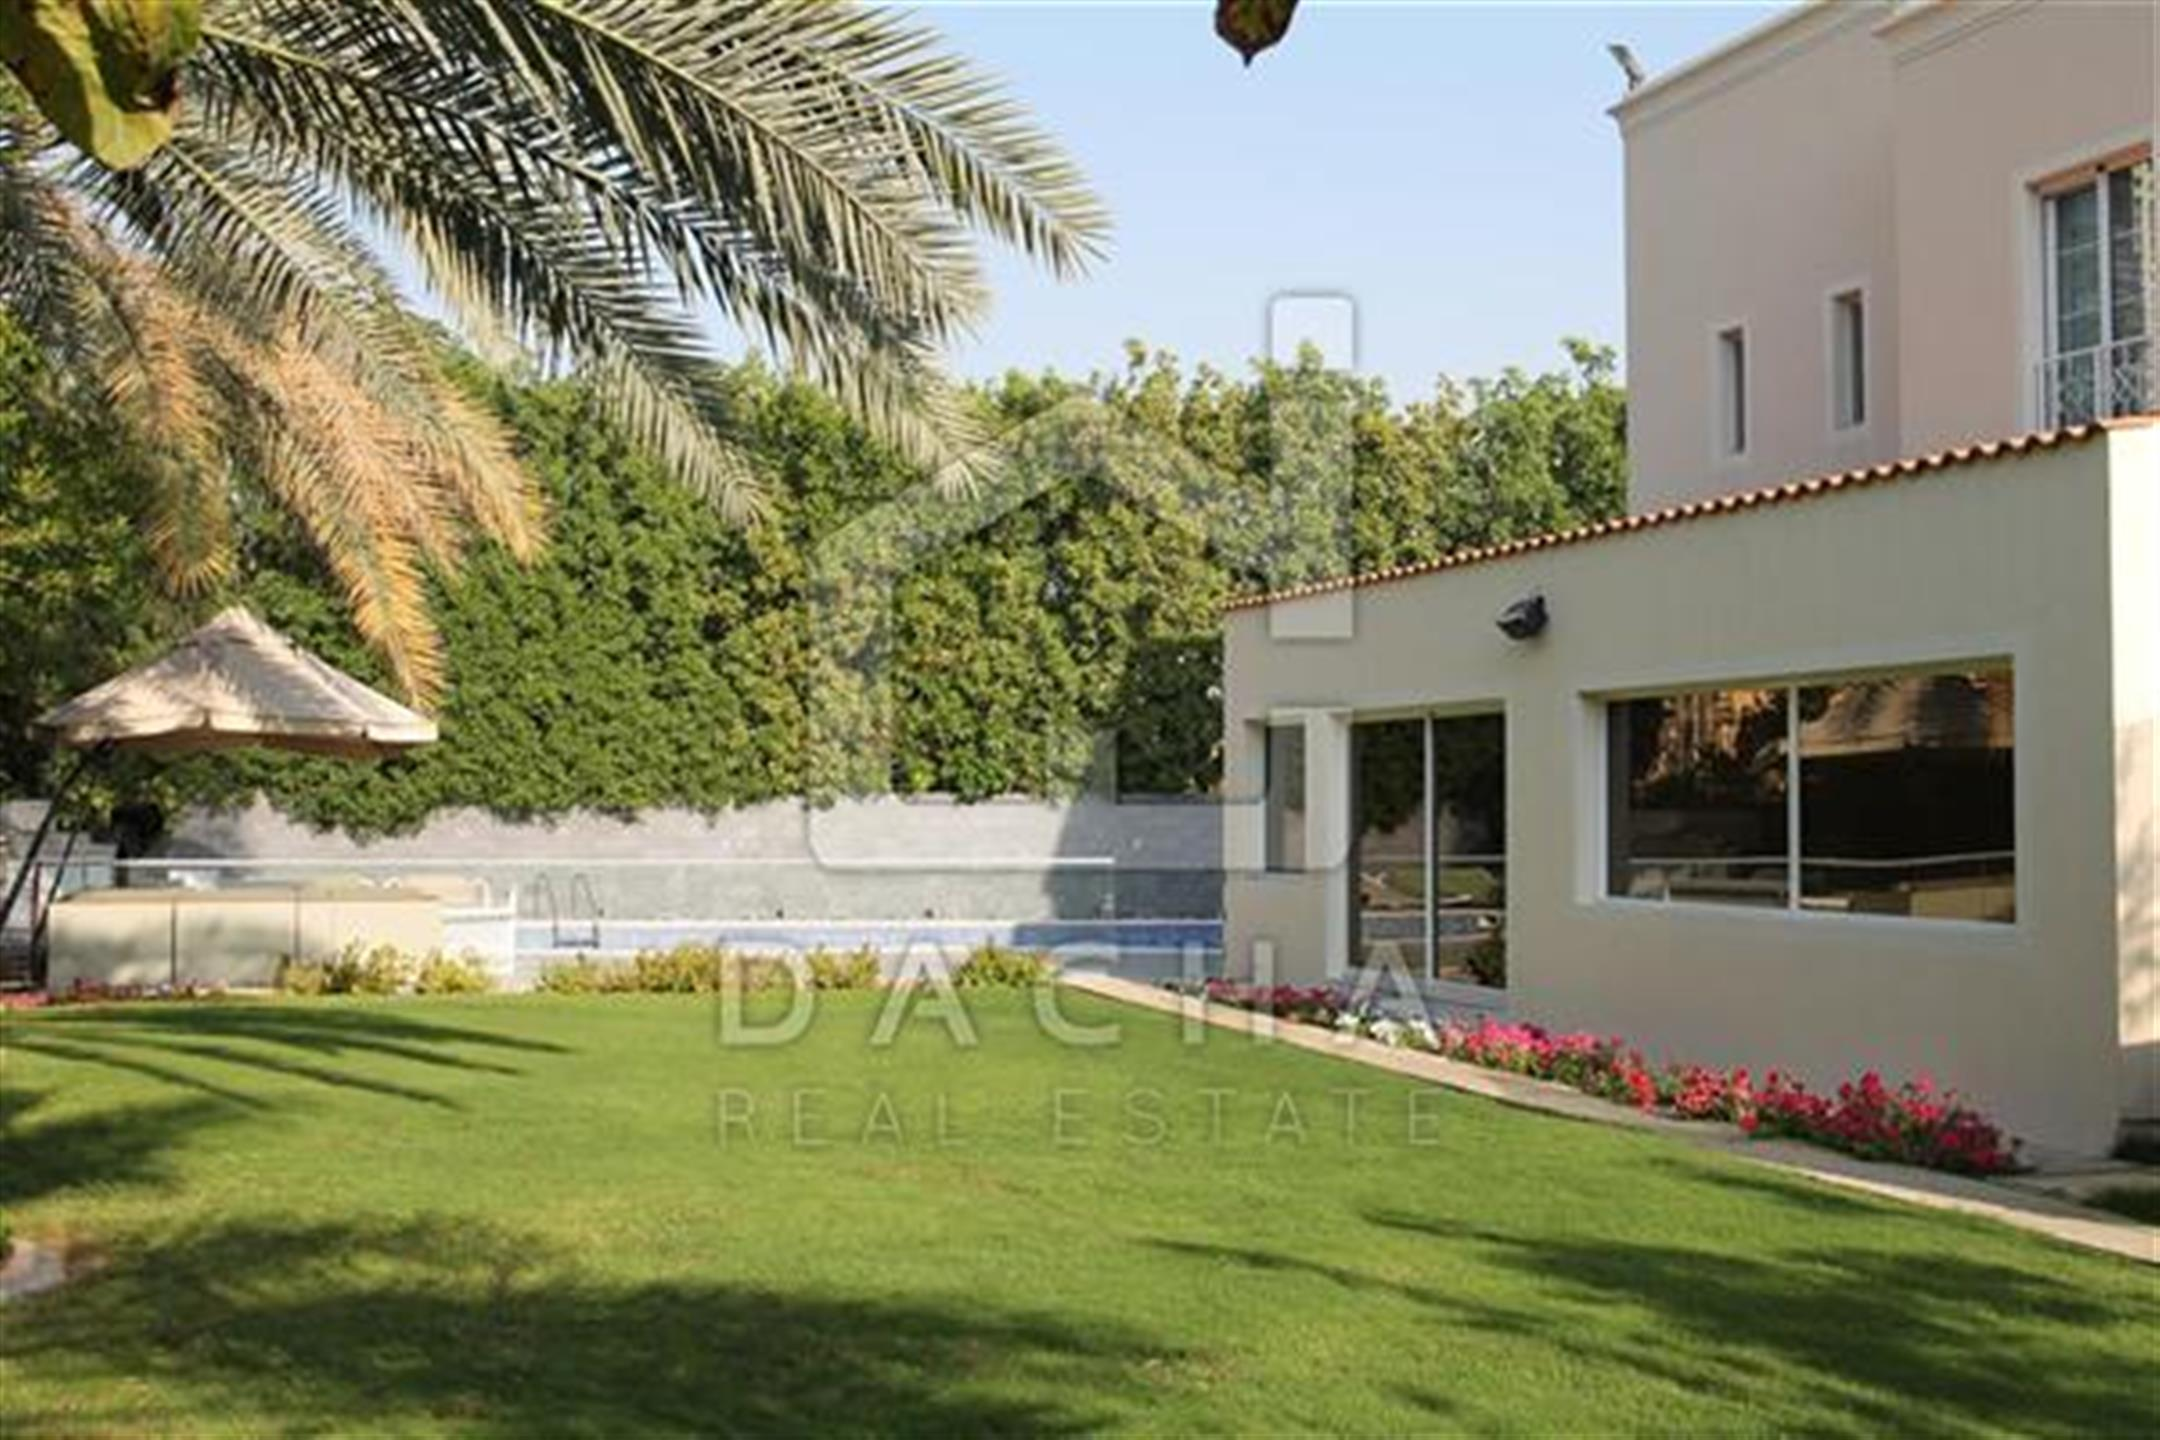 Property - Villa for sale in The Meadows- Dubai - Meadows 9